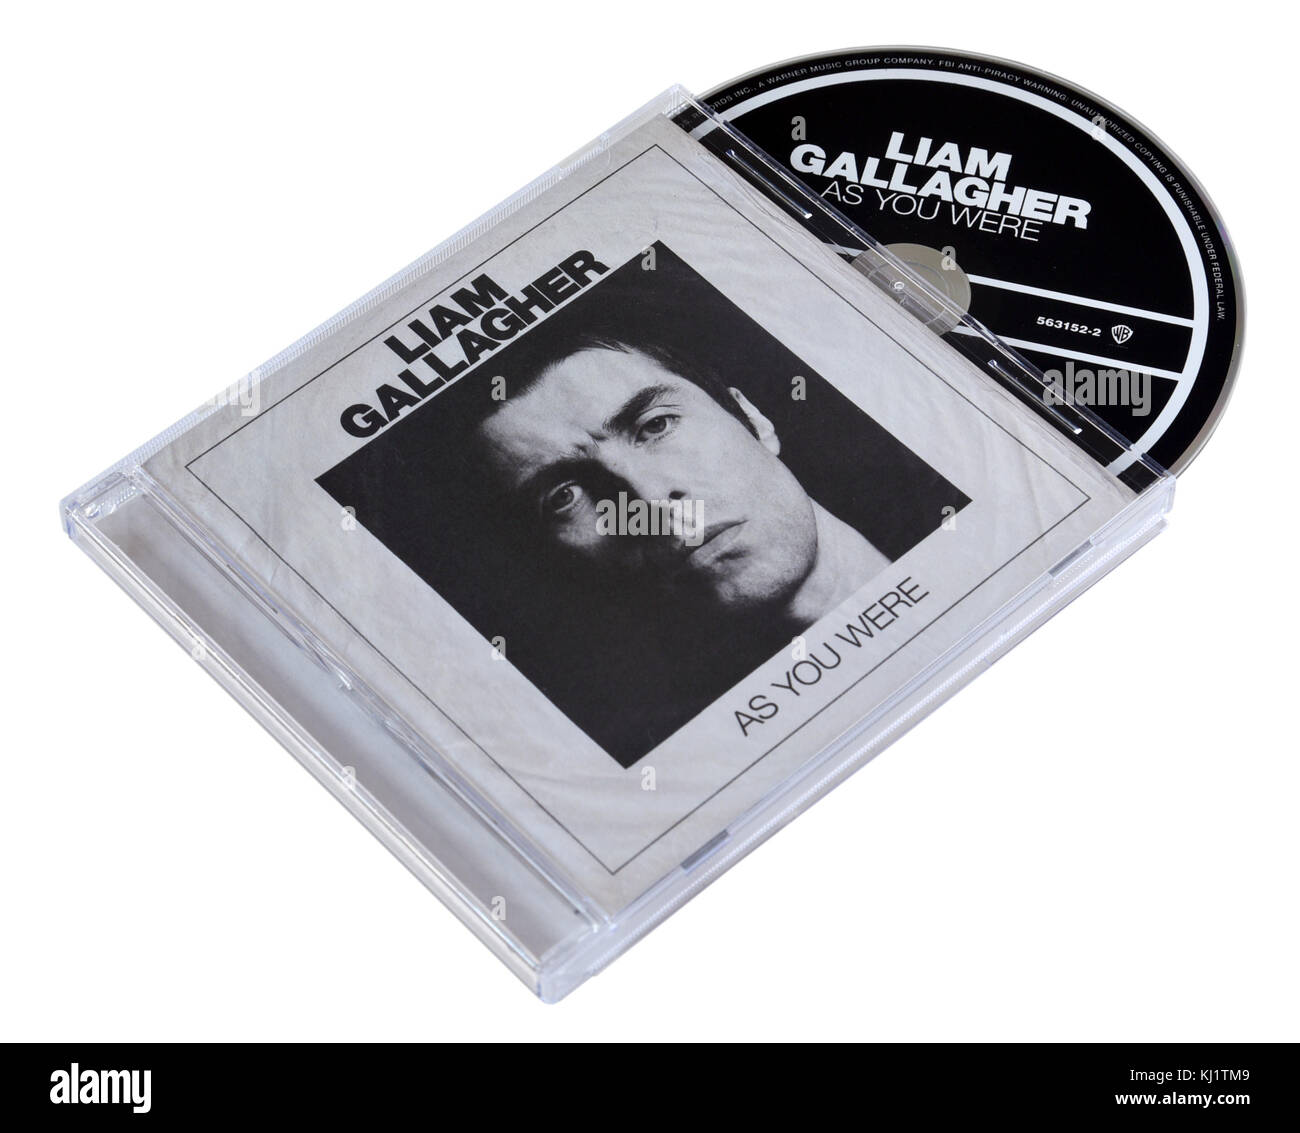 Liam Gallagher album As You Were - Stock Image